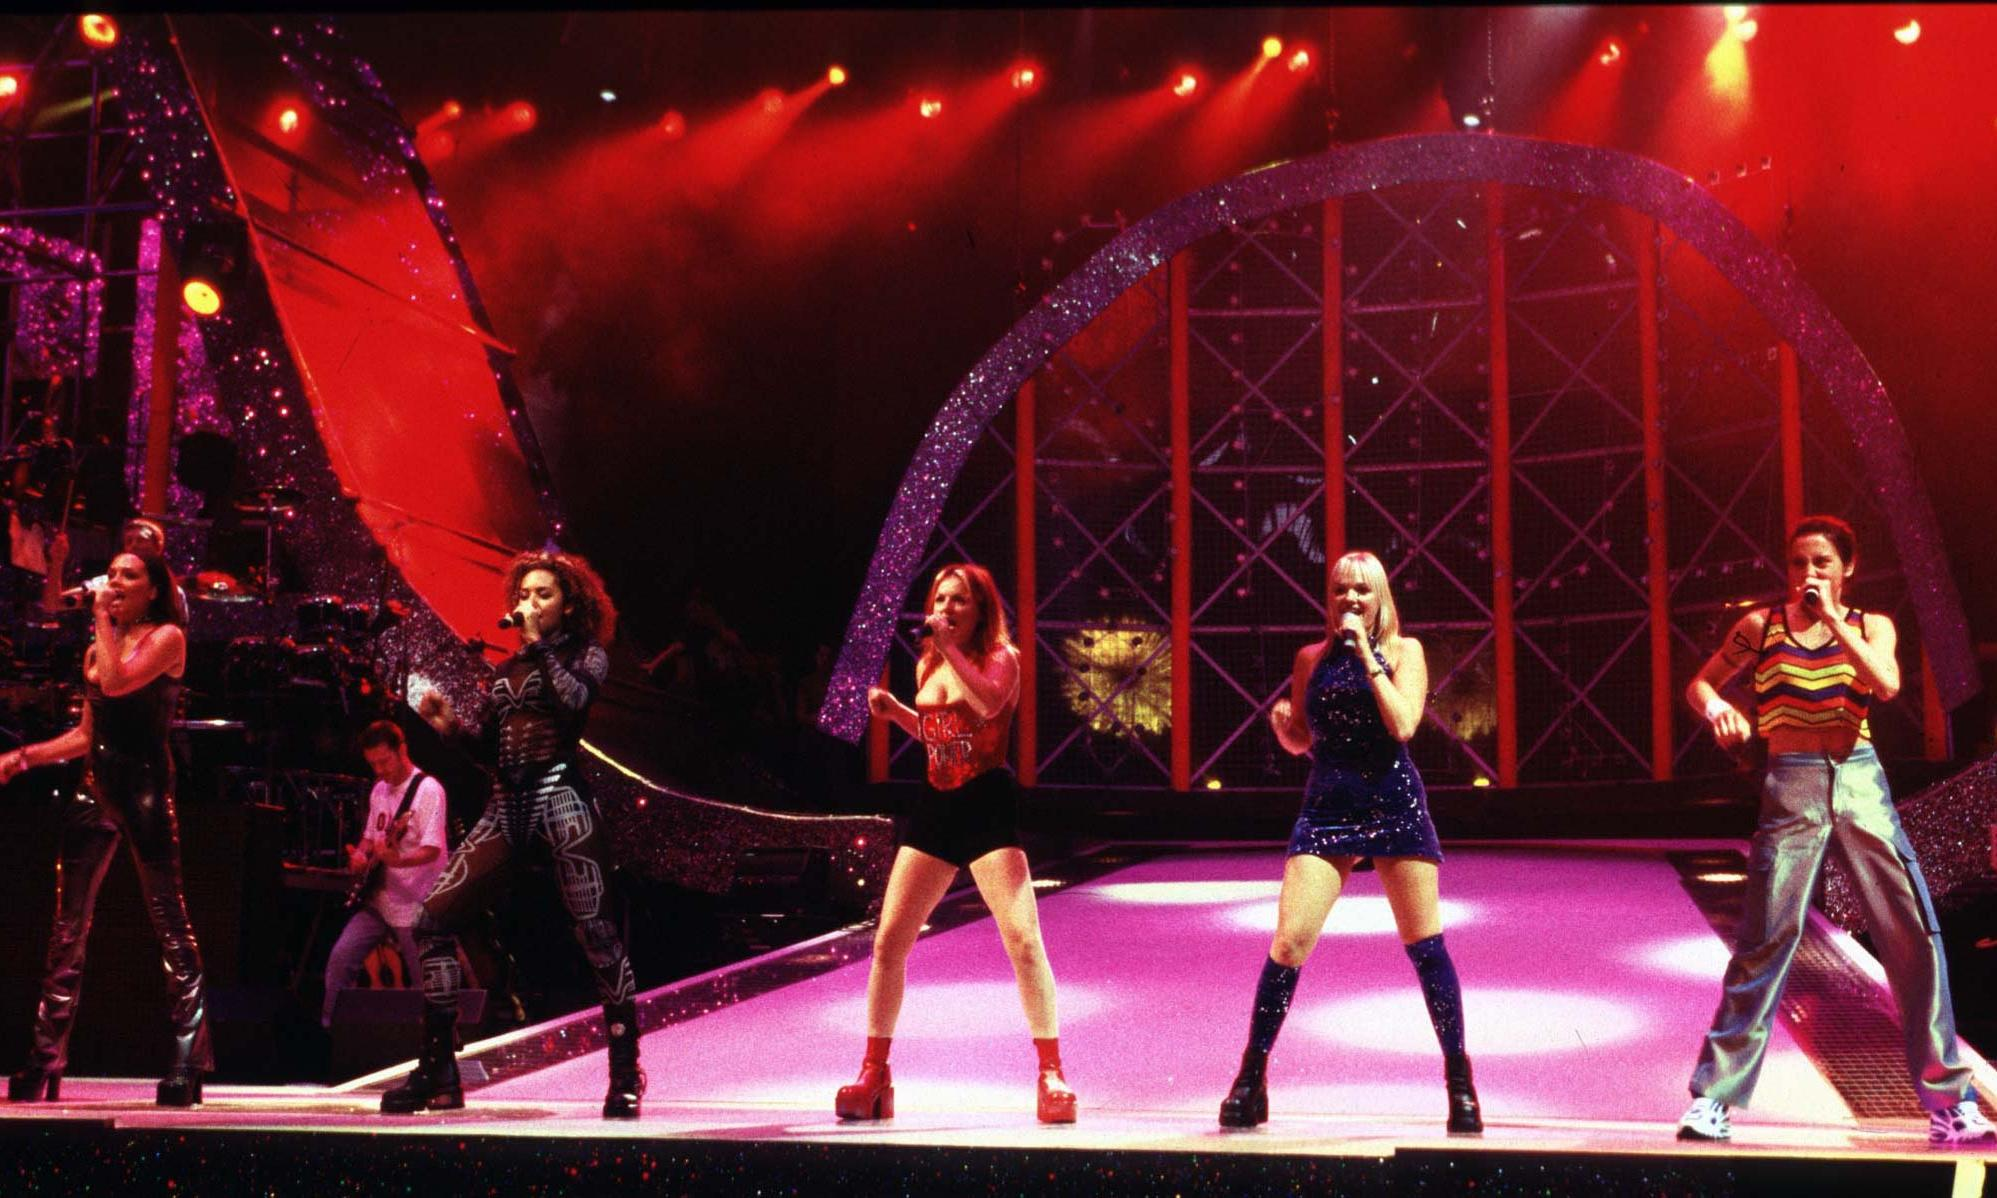 'Tens of thousands of tots empty their lungs': relive the Spice Girls' first tour